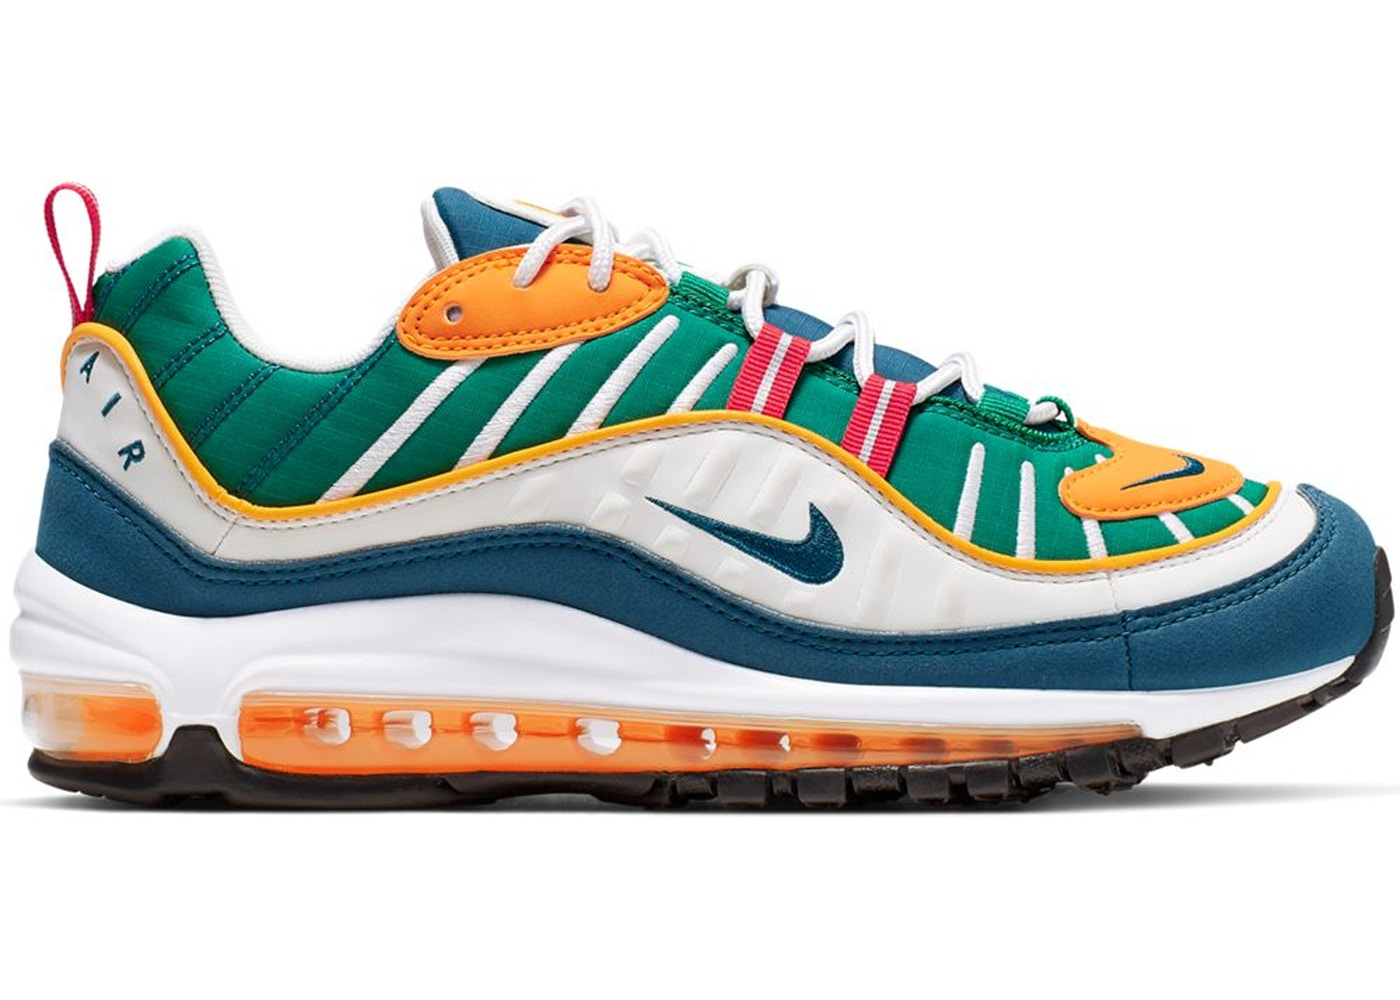 1e065876fe Air Max 98 Multi-Color (W) - AH6799-601